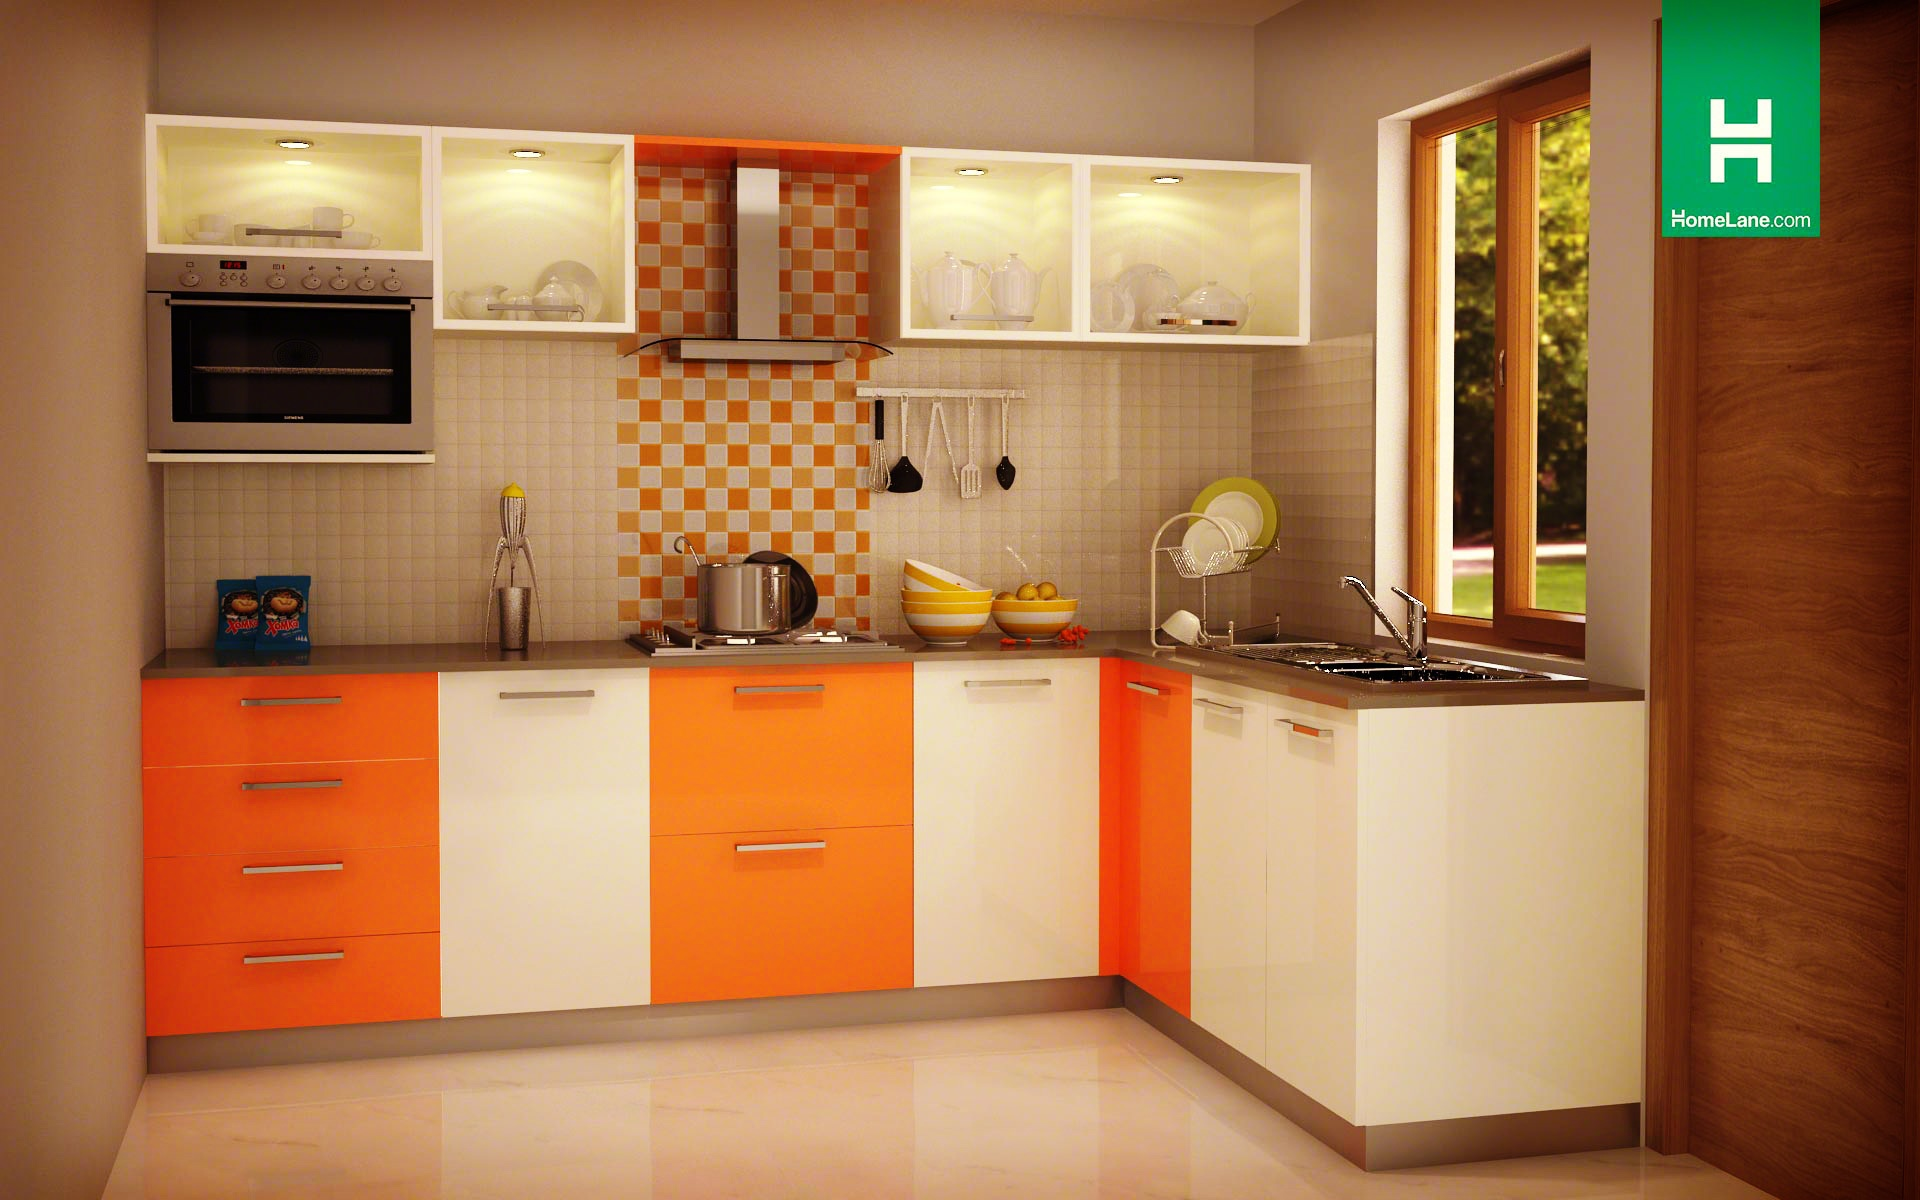 Residential Interior Designers for all Rooms - Homelane India